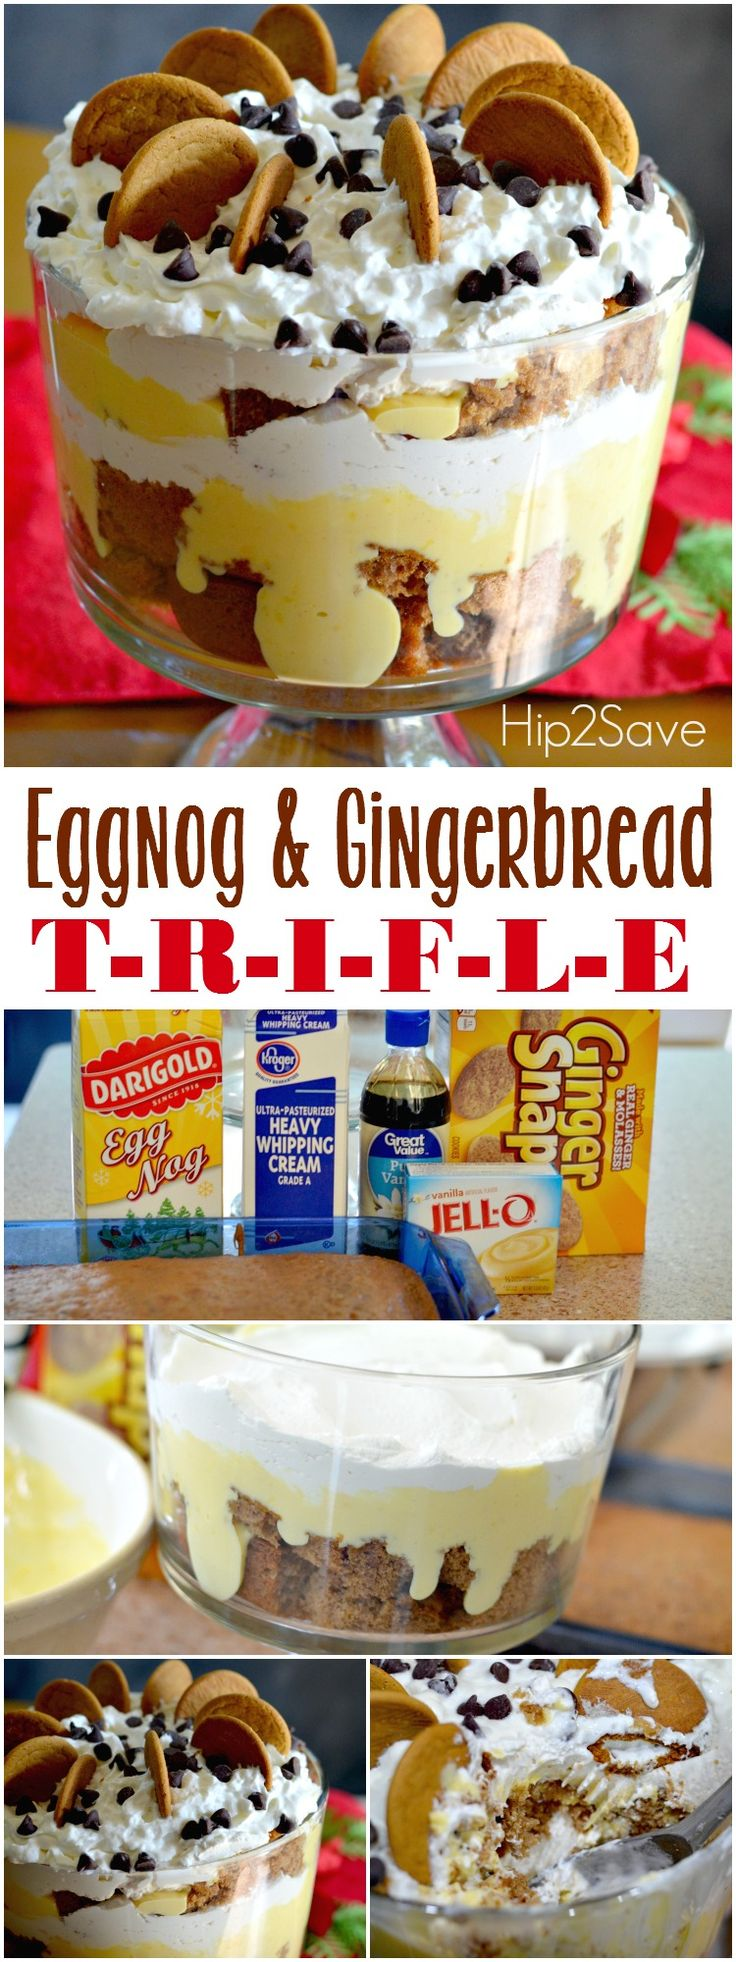 Eggnog Gingerbread Trifle. Great. A great winter and holiday treat. – Hip2Save.com